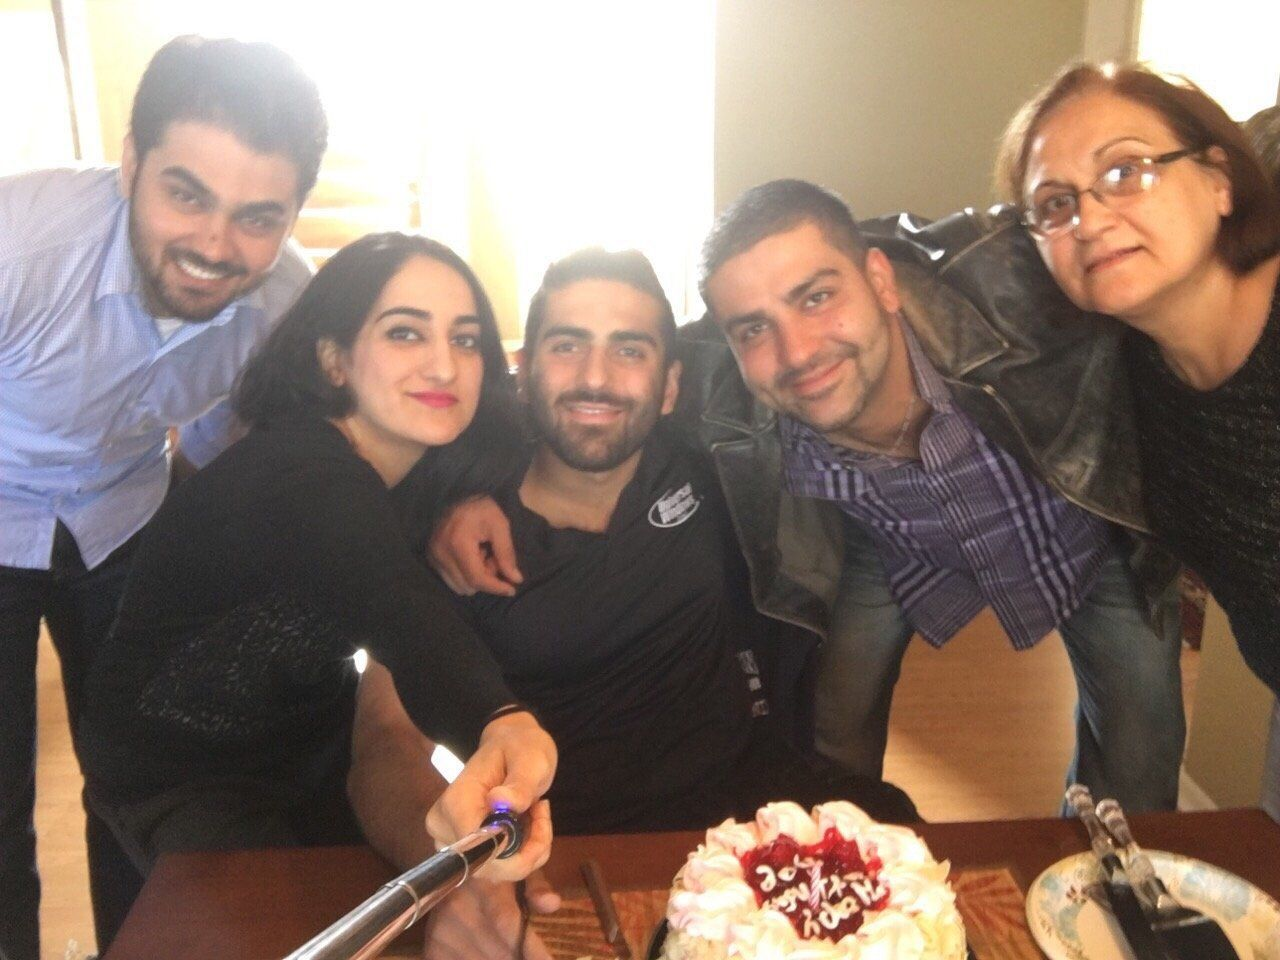 Mustafa Ayoubi (second from the right) and family pose for a photo. His sister Zahra is holding the selfie stick.